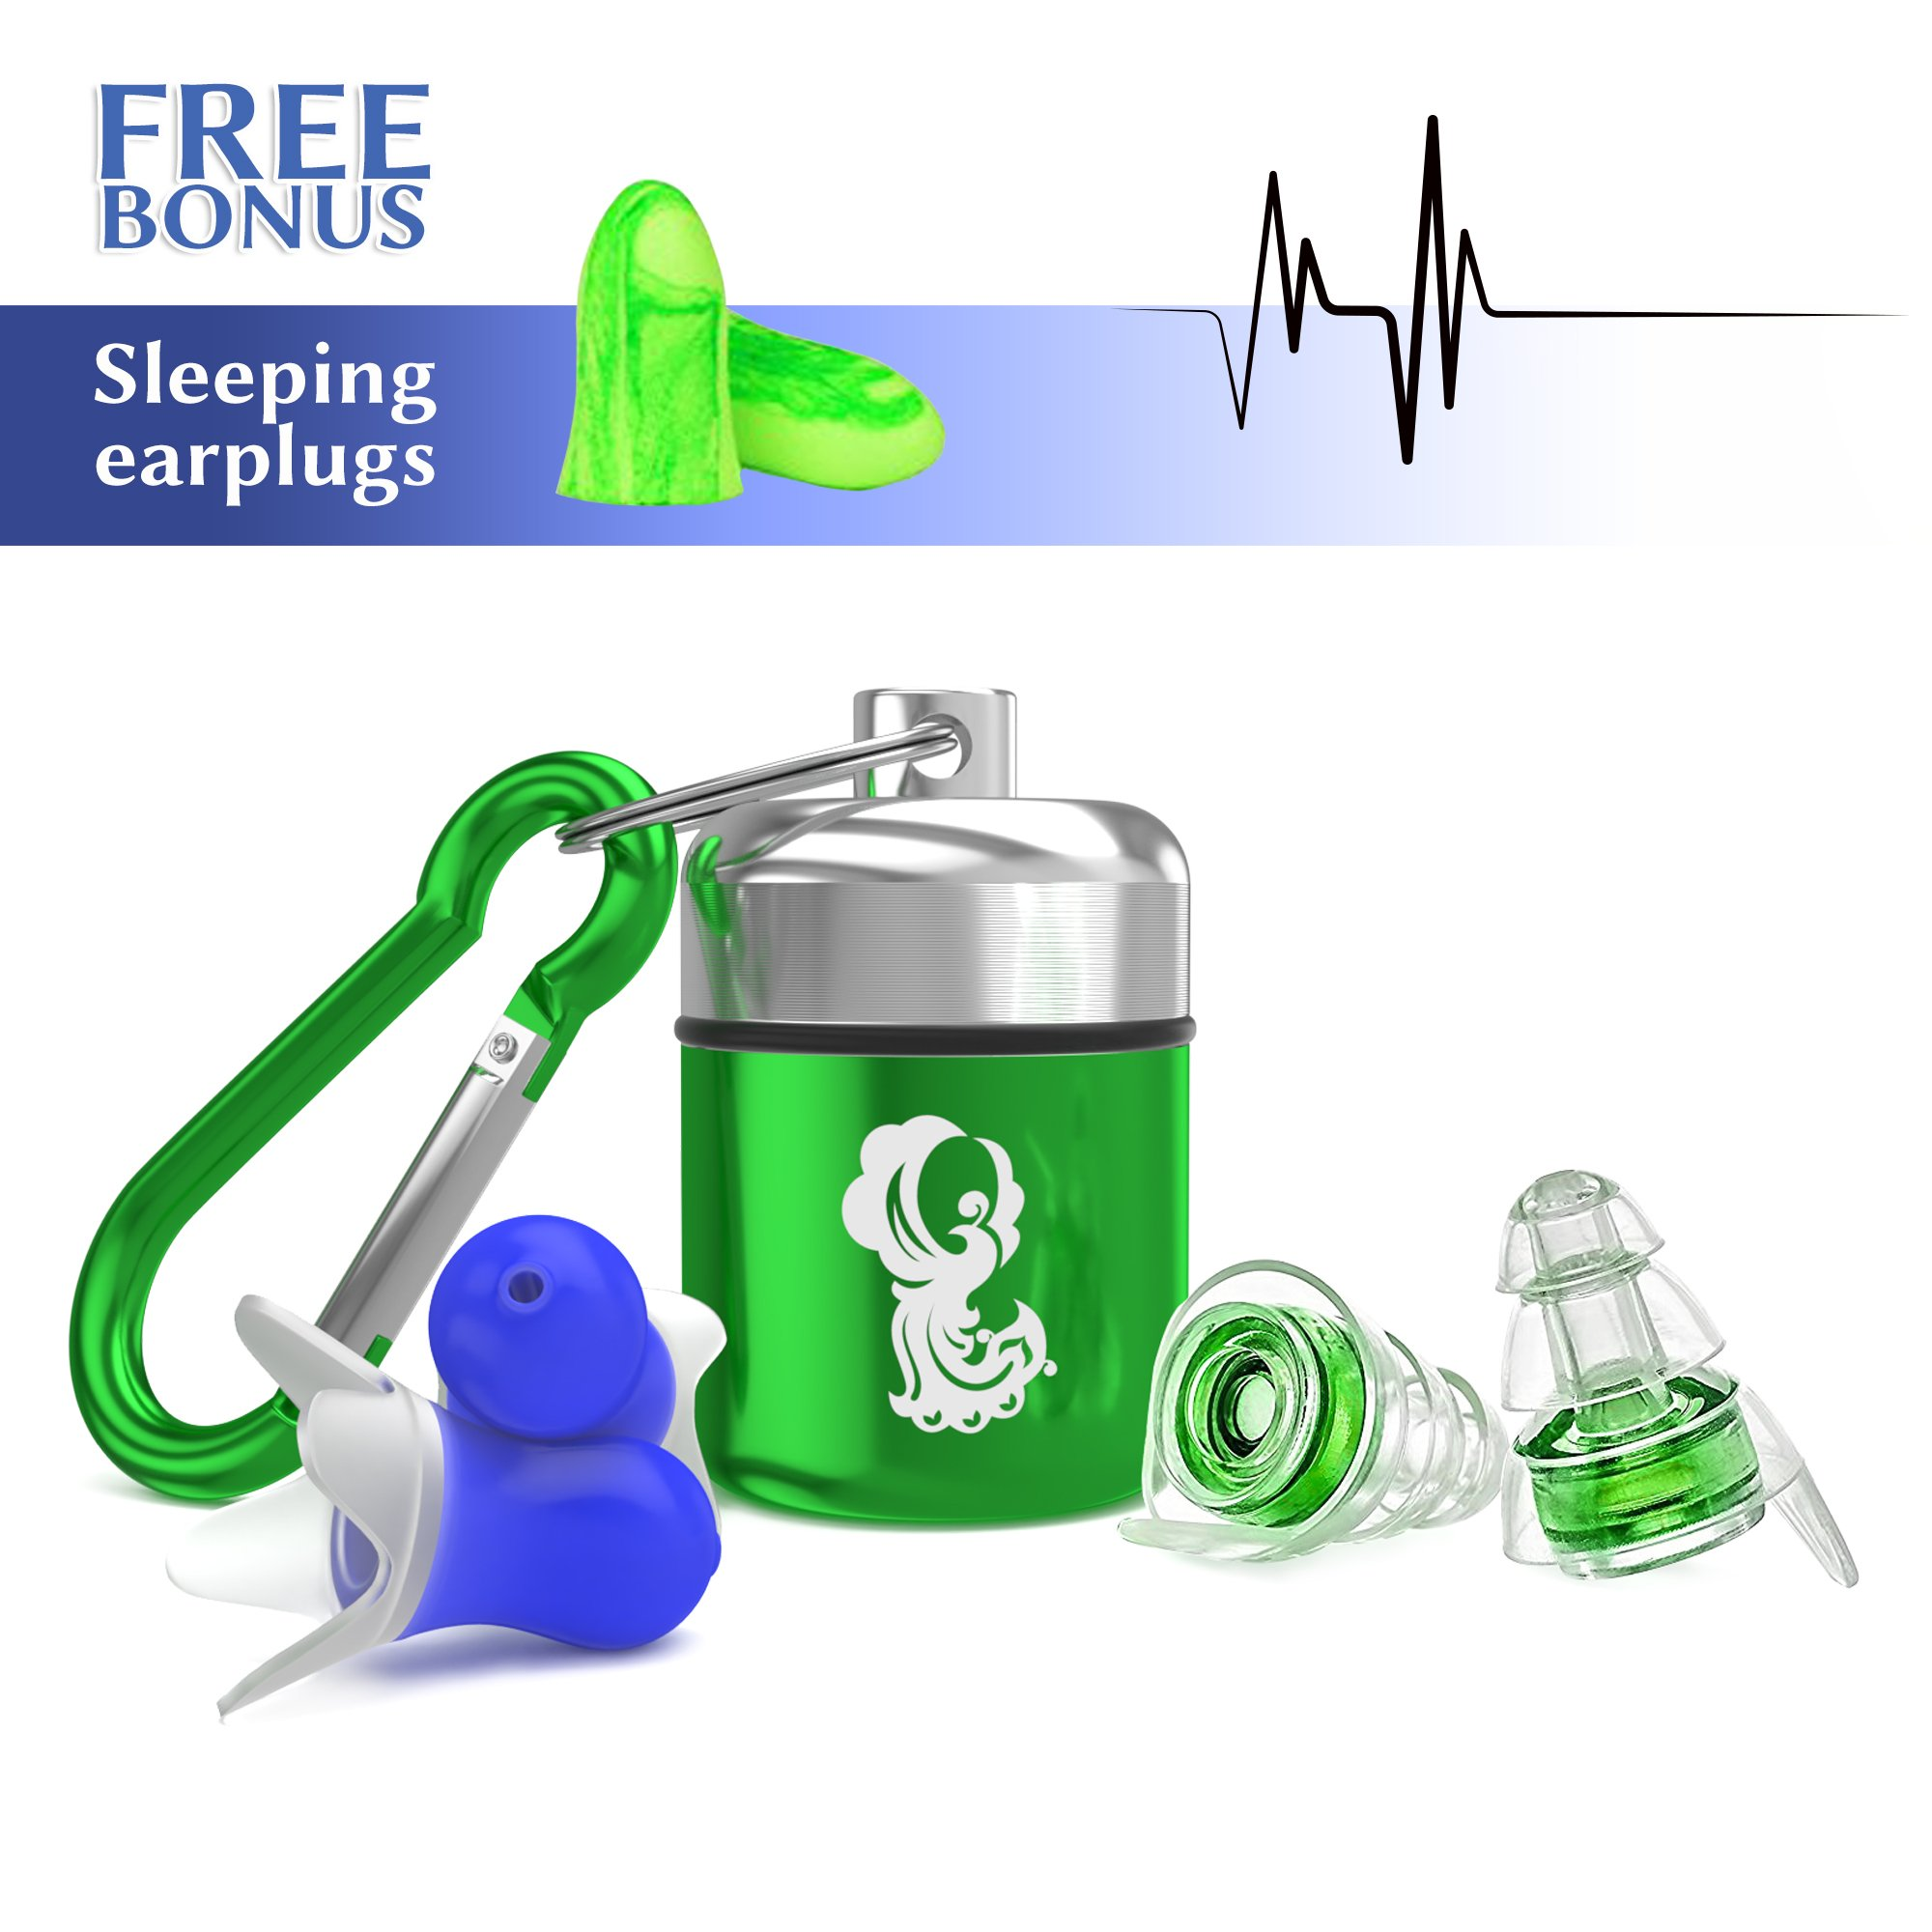 High Fidelity Earplugs Noise reduction Silicone Ear Plugs with Aluminum Carry Case for Sleeping, Studying, Snoring, Concerts, Traveling and Loud Events